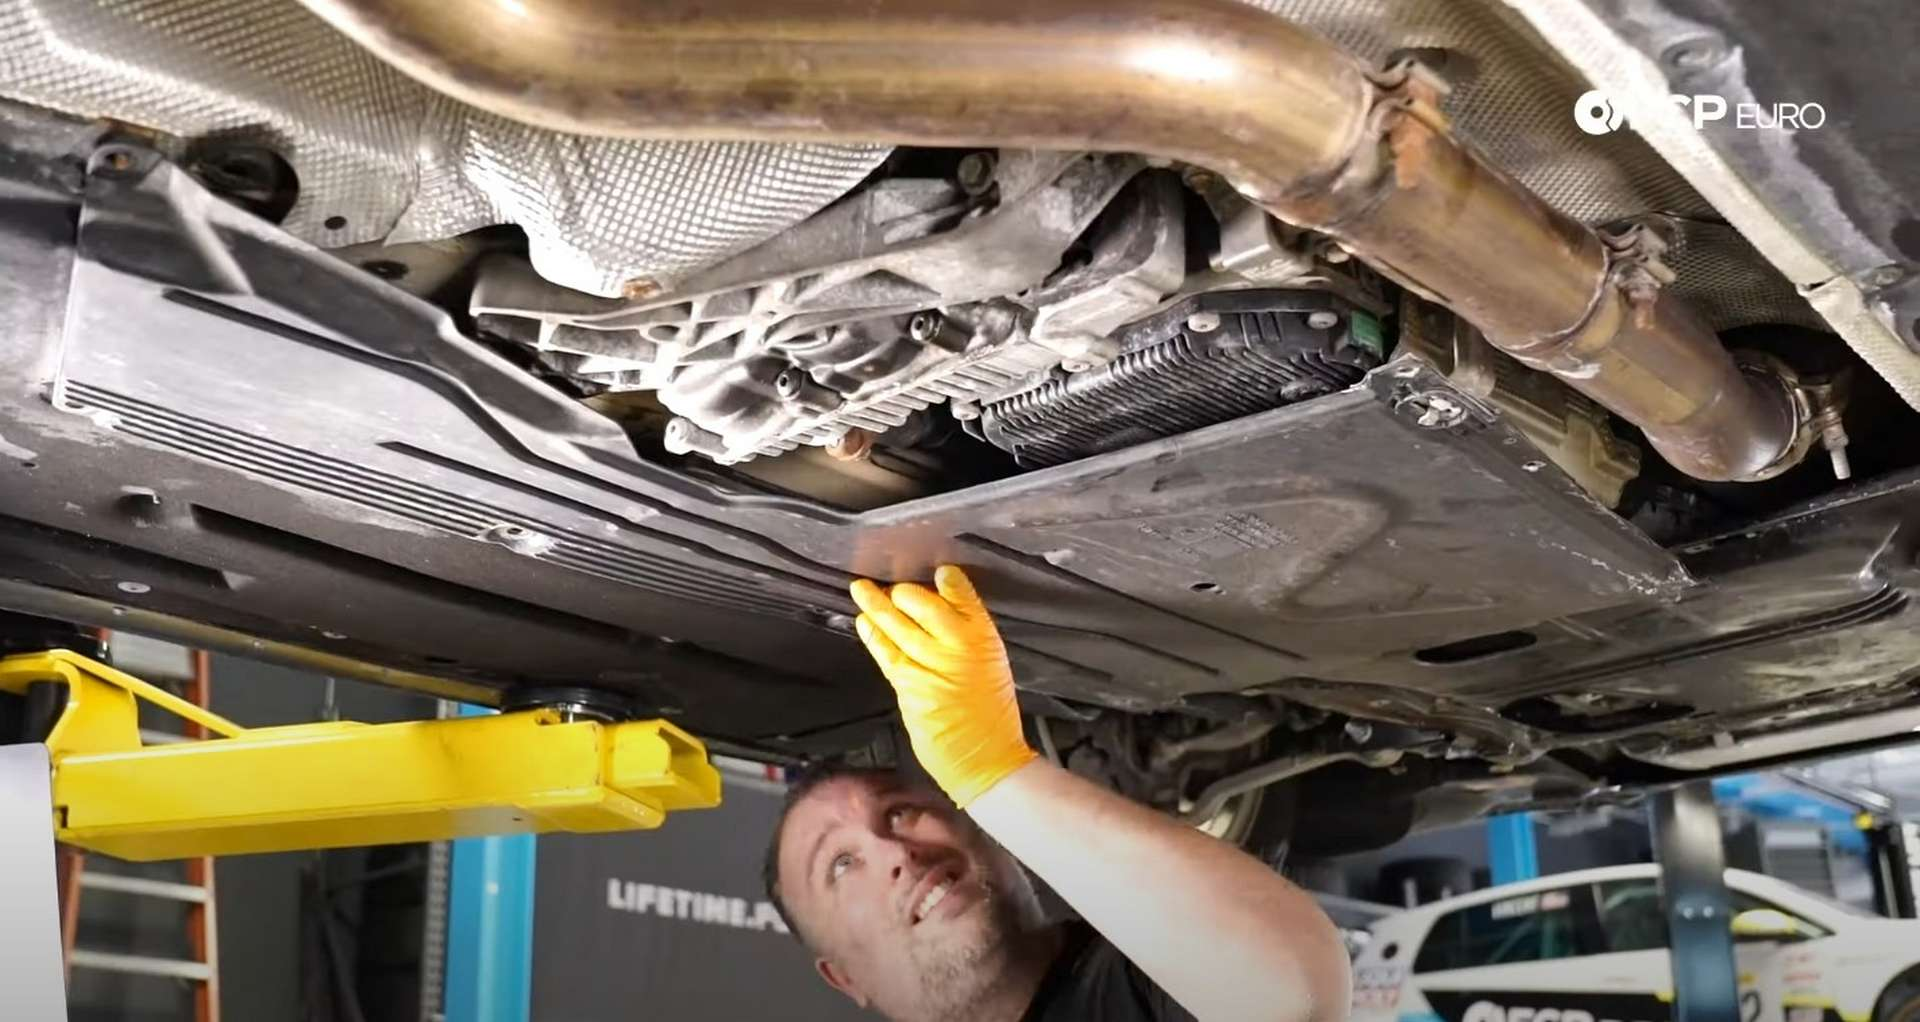 DIY BMW F30 Front Differential Fluid Replacement removing the underbody panels